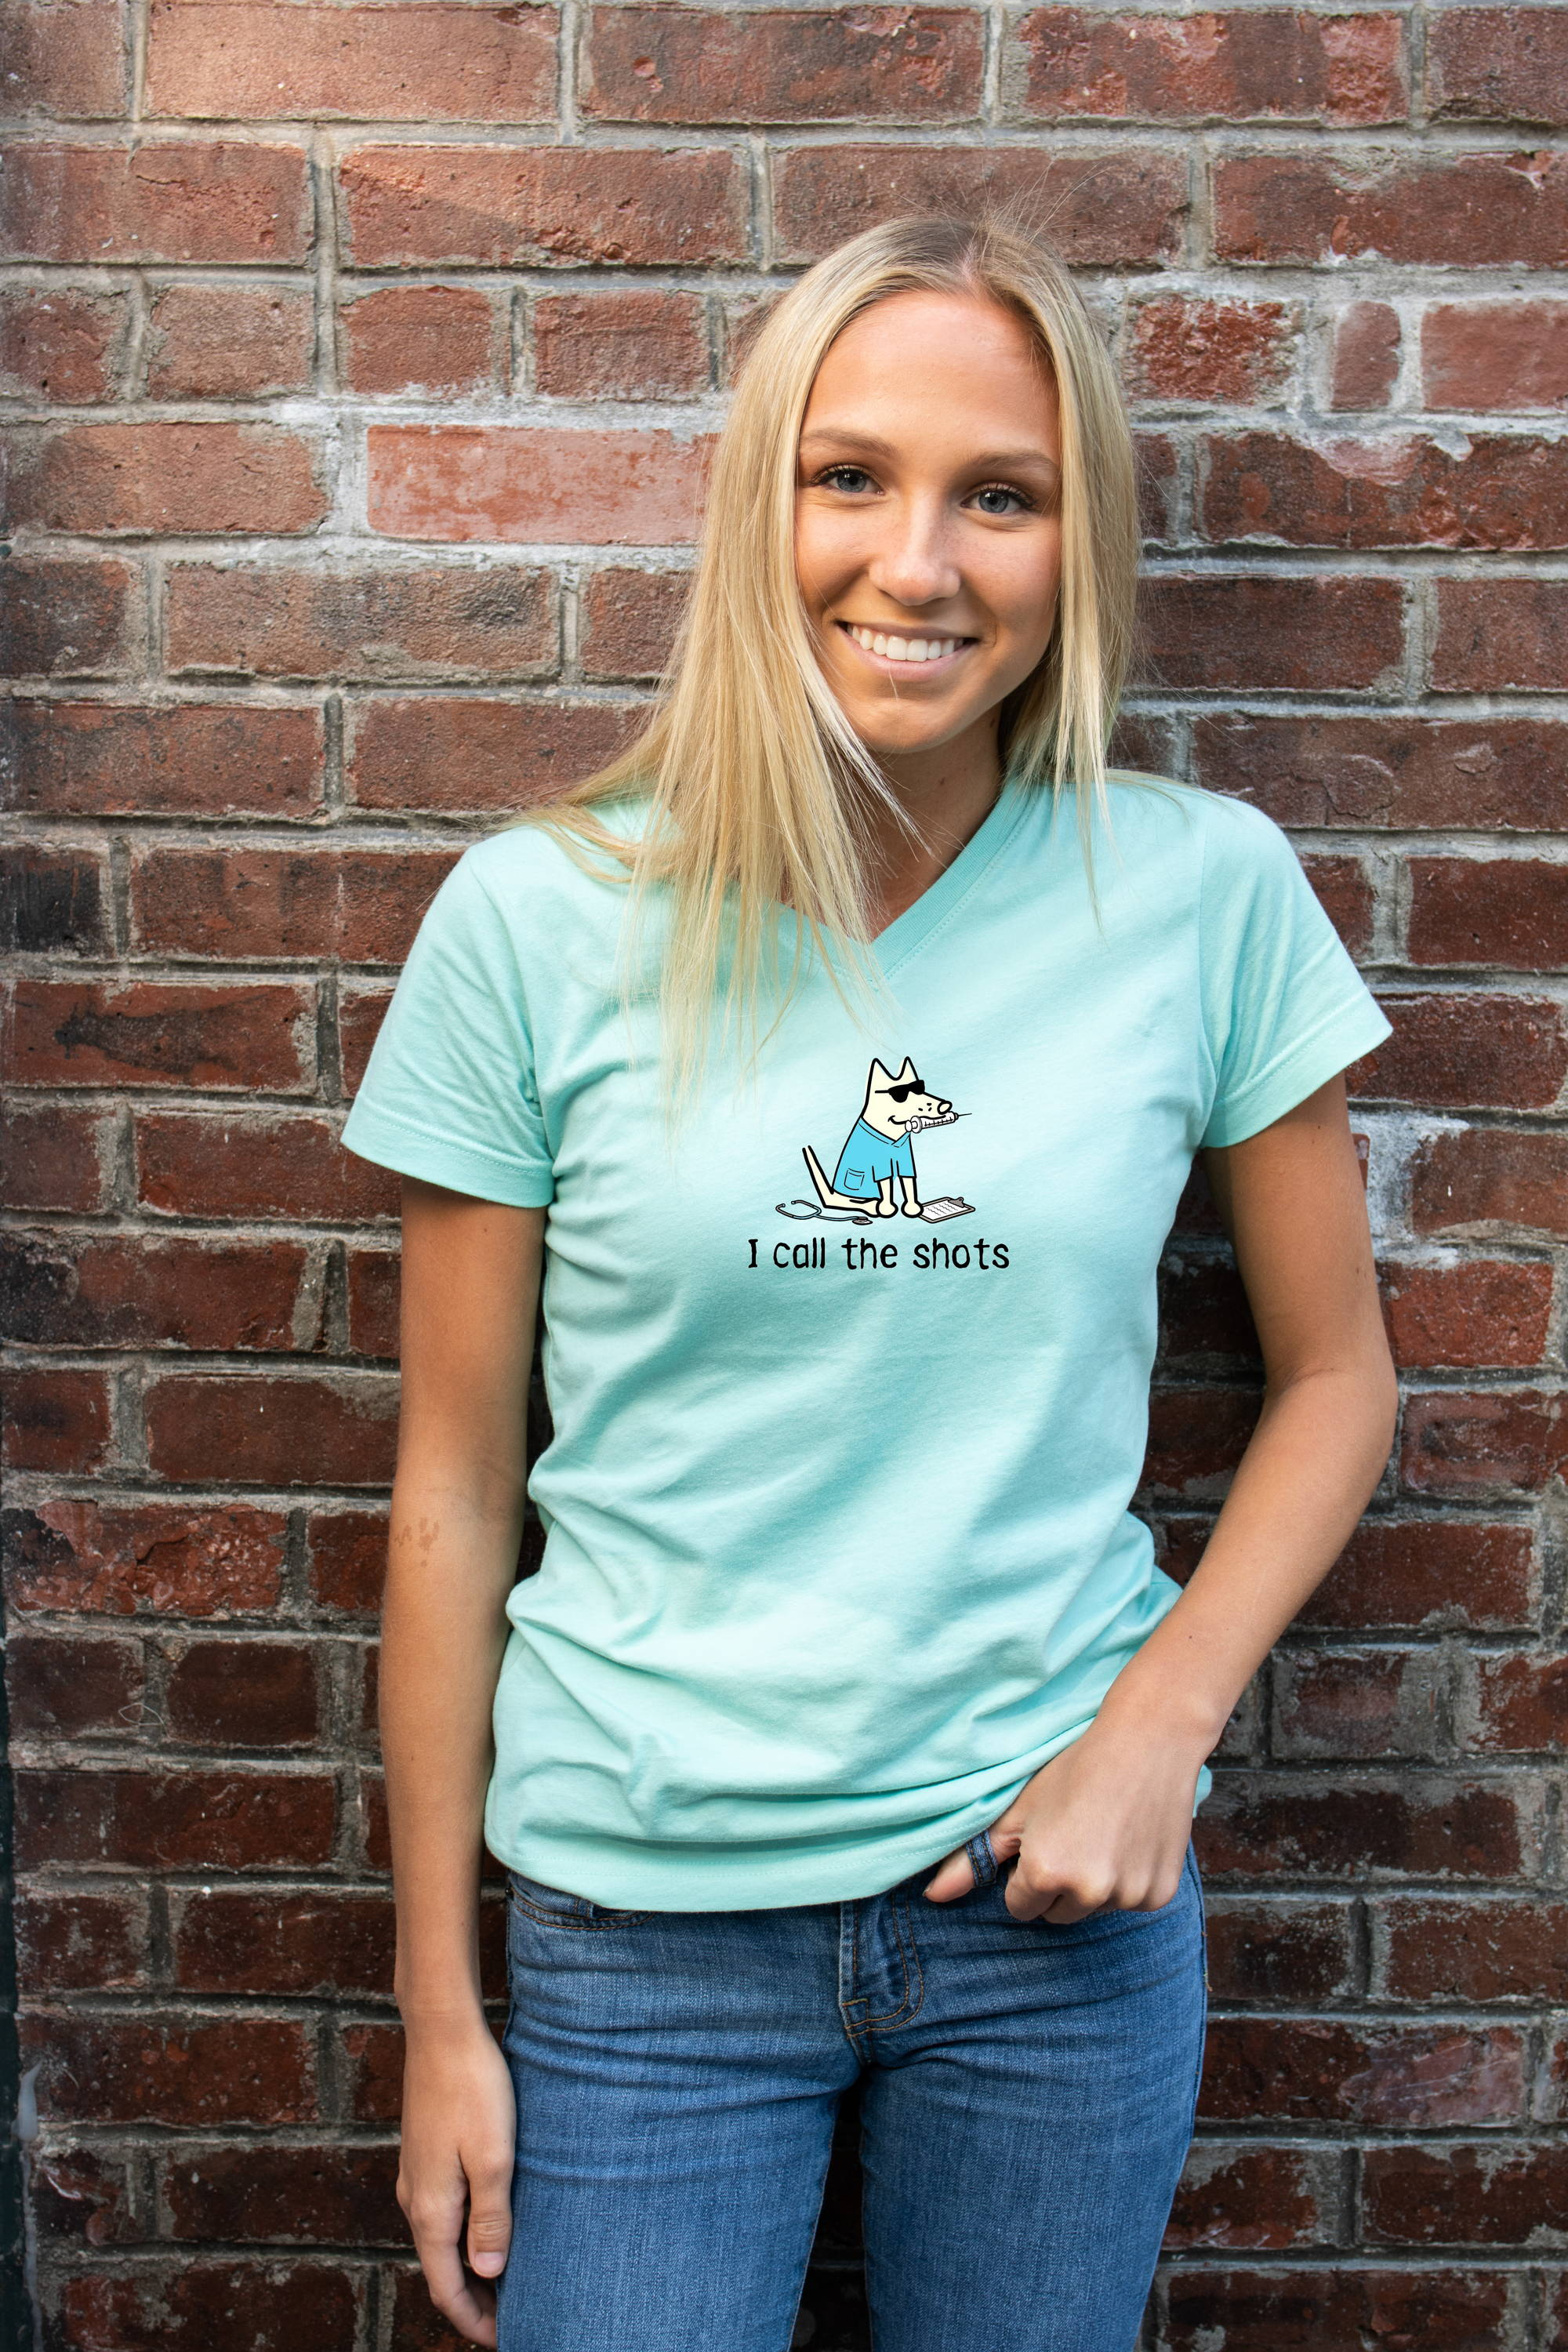 Shop teddy the dog women's clearance